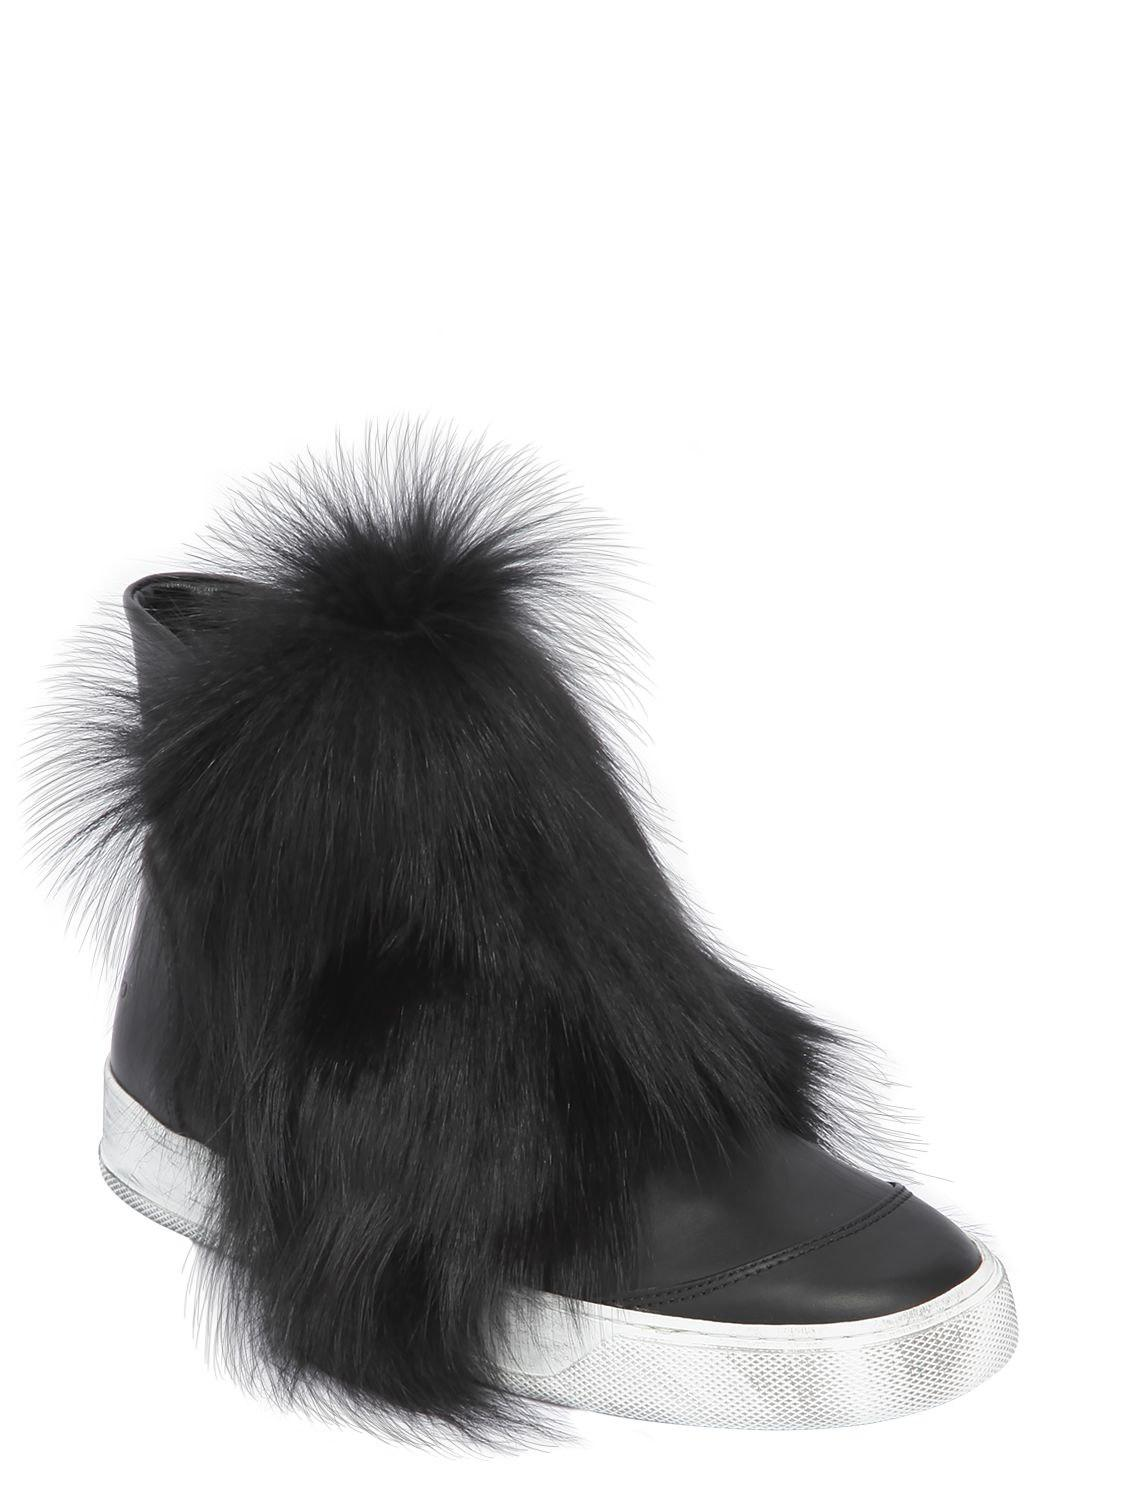 Cheap Visit New BLACK DIONISO 20MM FOX FUR & LEATHER HIGH TOP SNEAKERS Sale Order Outlet Big Discount Clearance Top Quality eZEySUj4xc